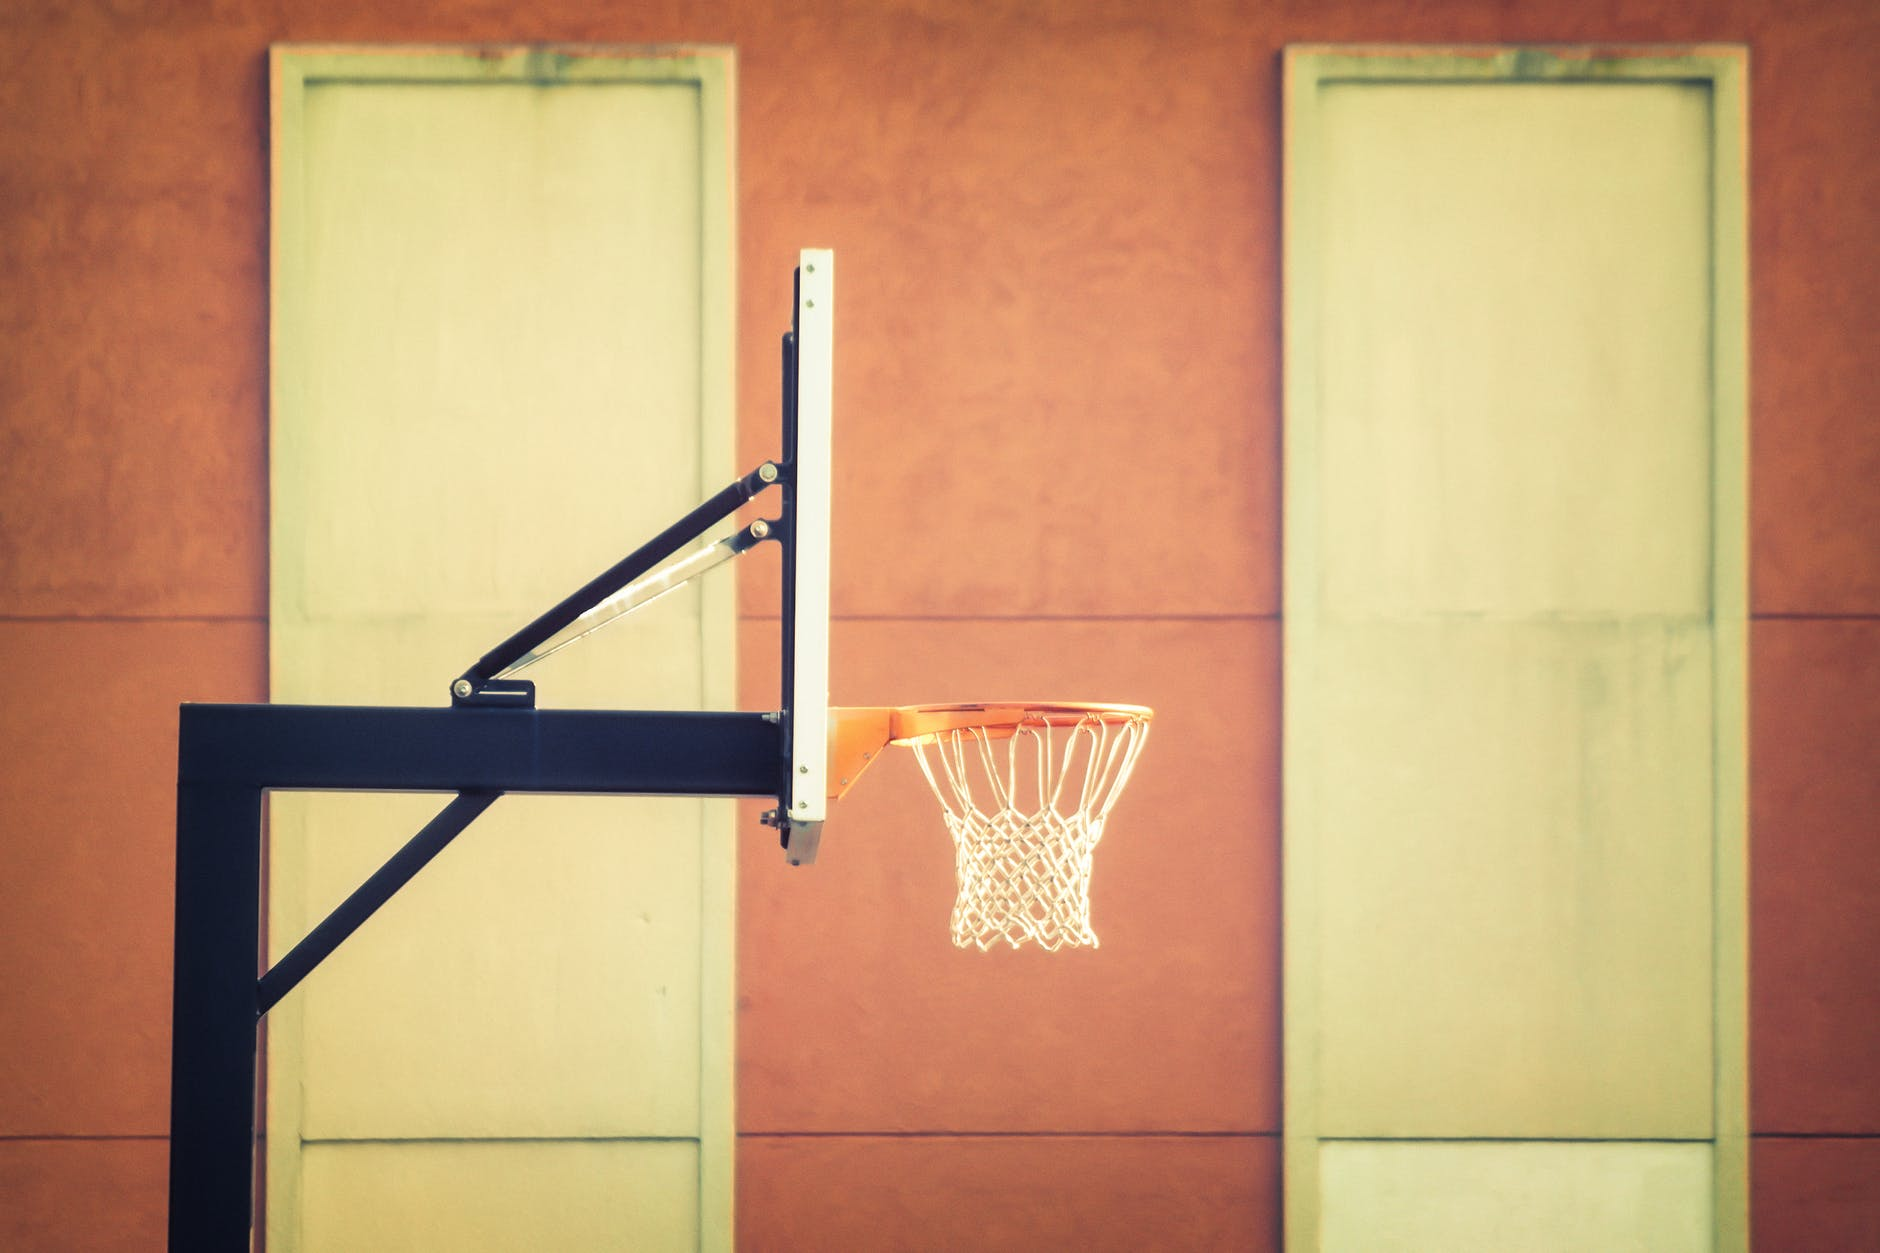 shallow focus photography of black metal outdoor basketball hoop